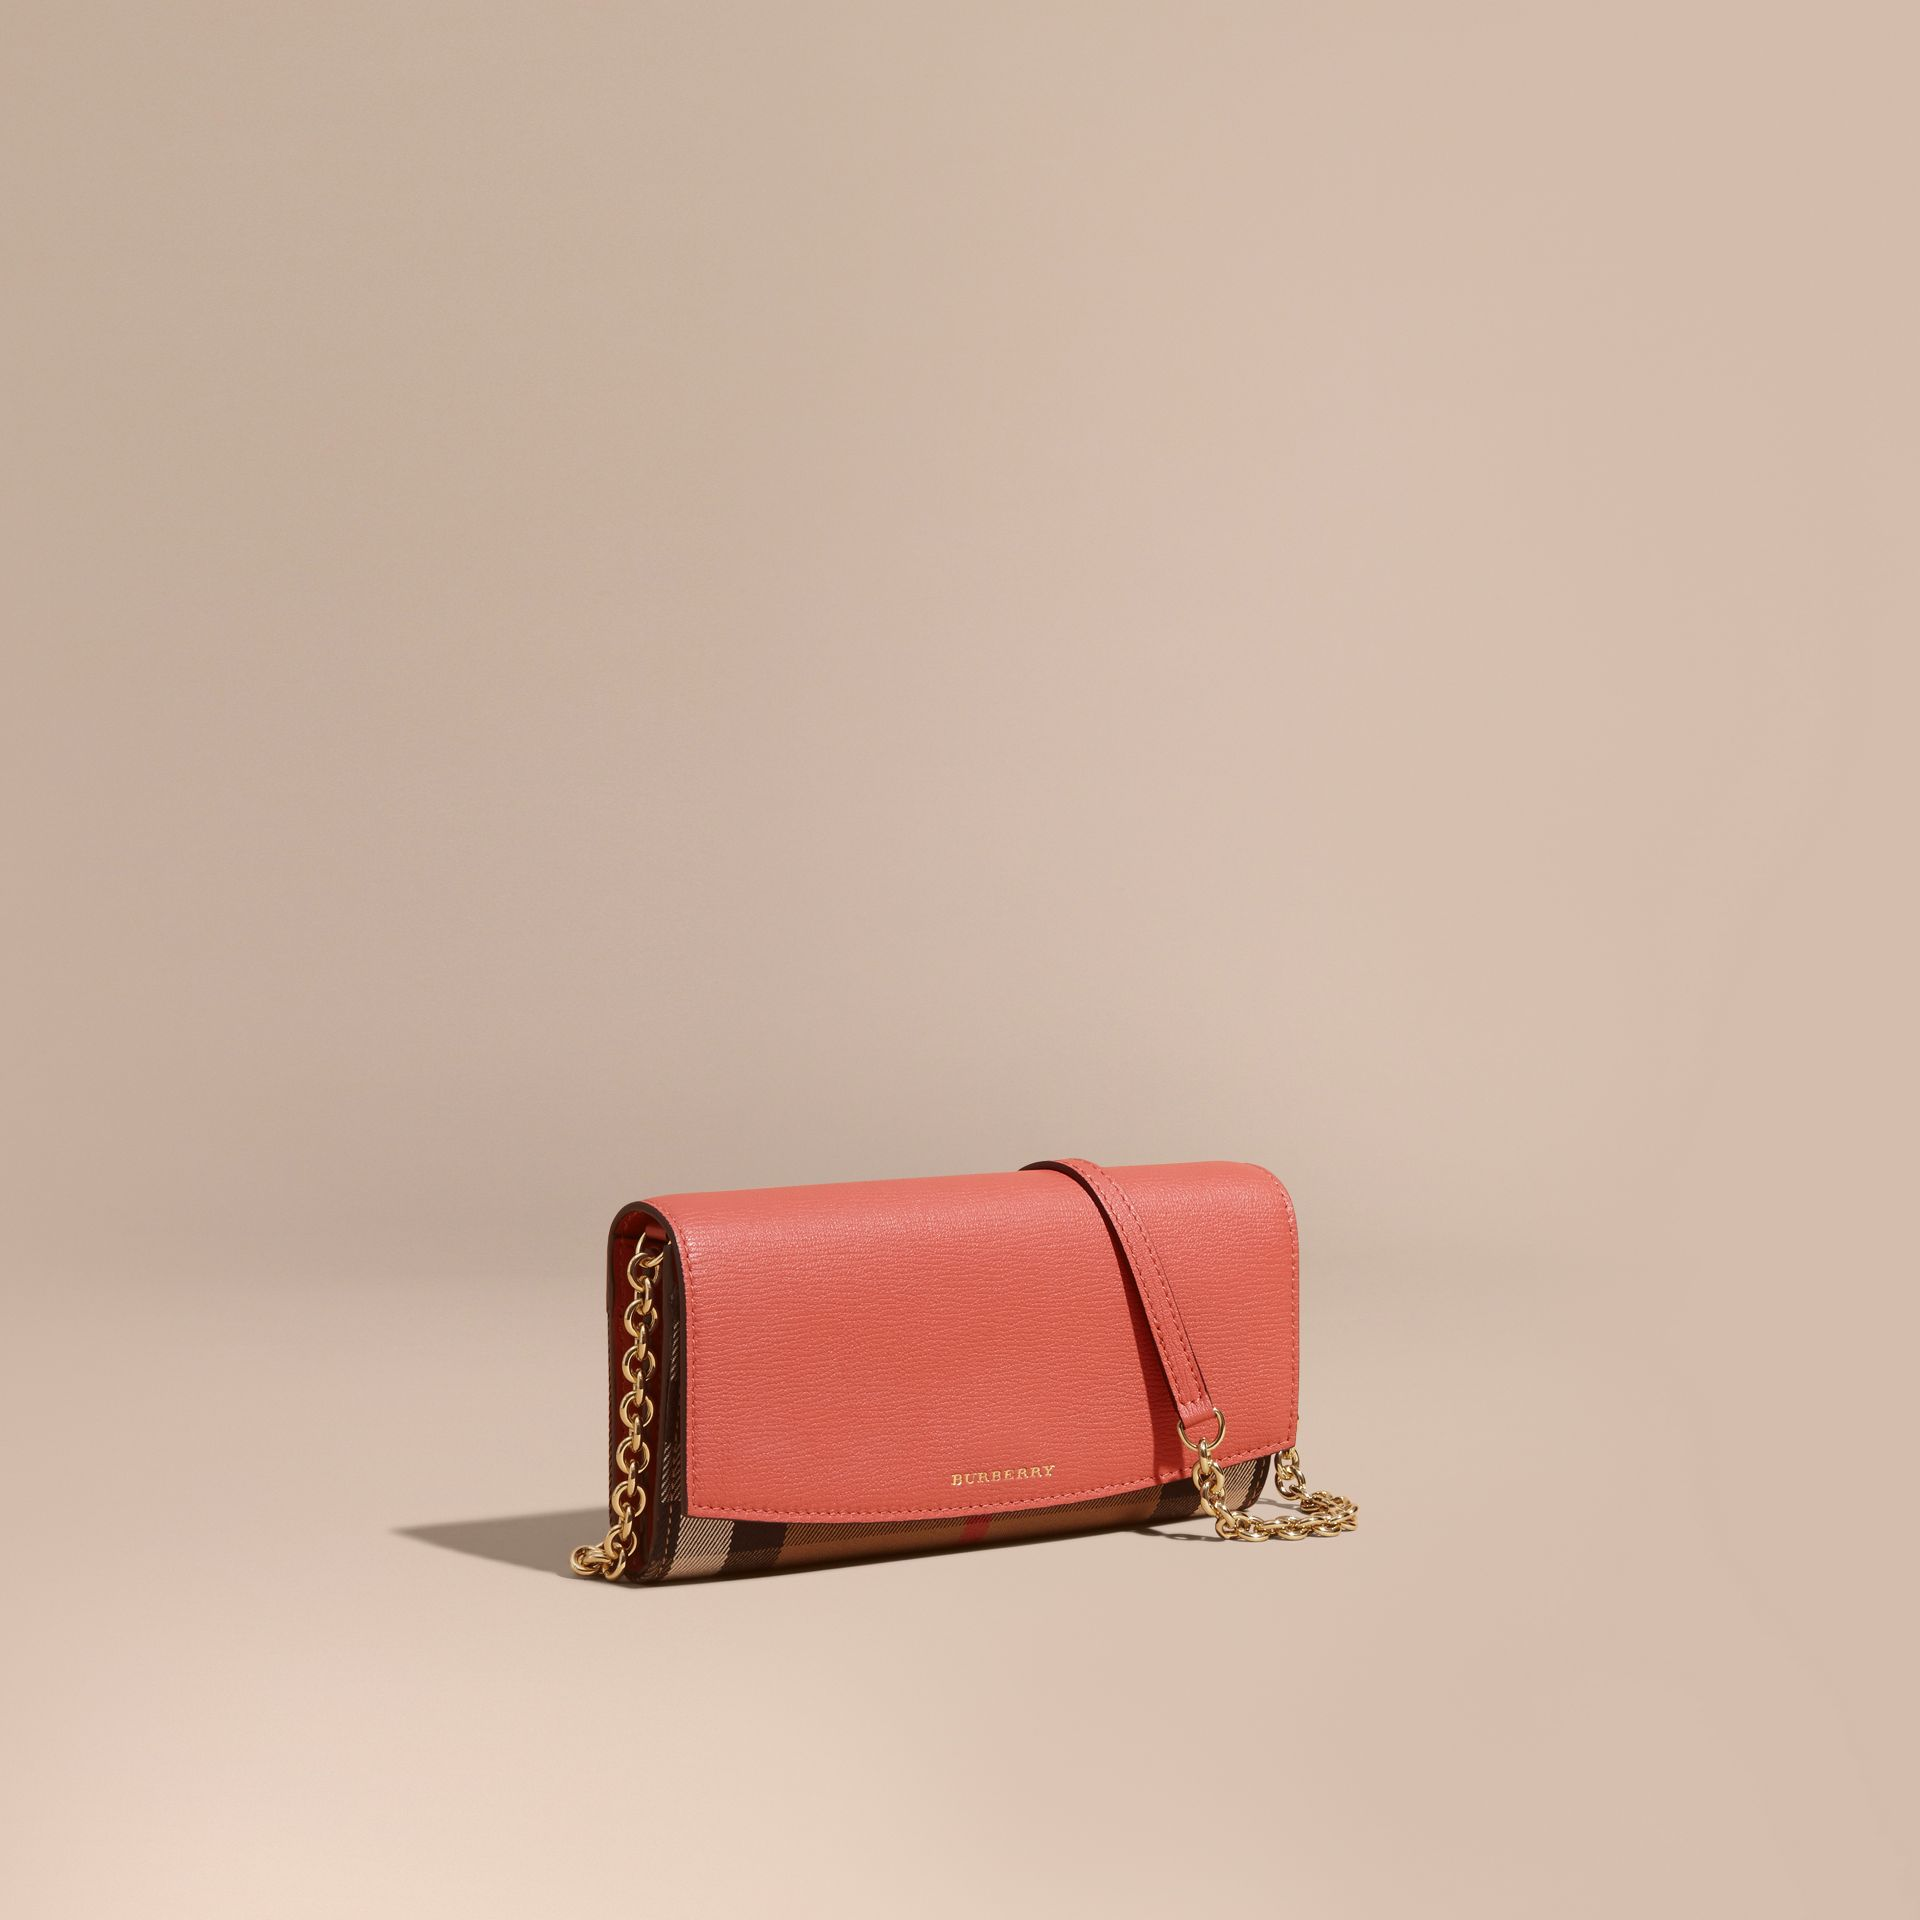 House Check and Leather Wallet with Chain in Cinnamon Red - Women | Burberry - gallery image 1